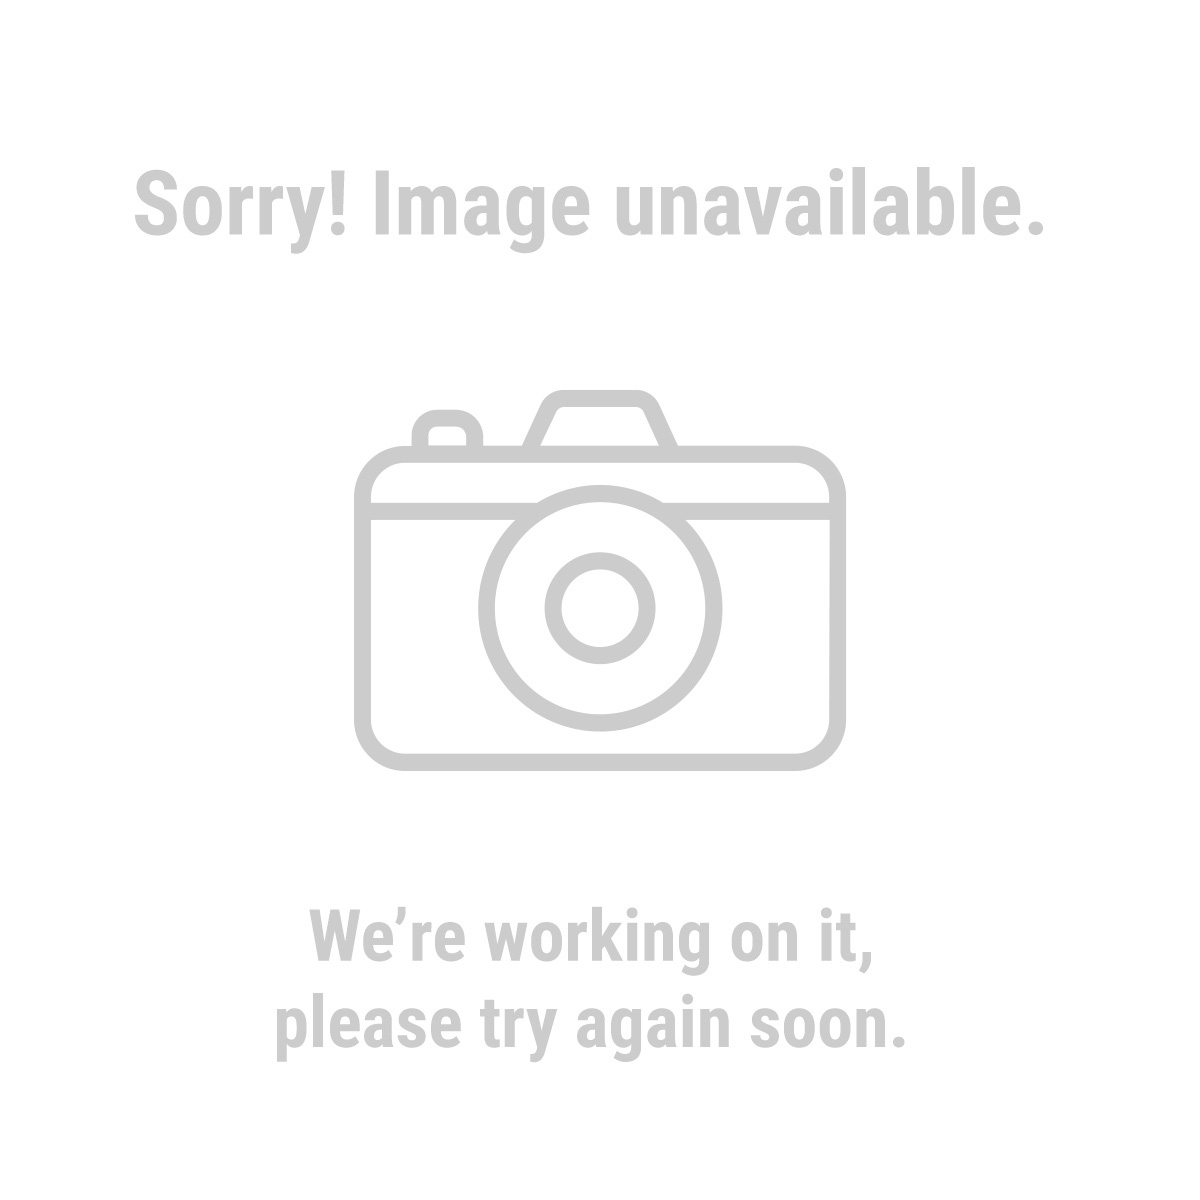 Krause & Becker 61958 2 in. Professional Paint Brush